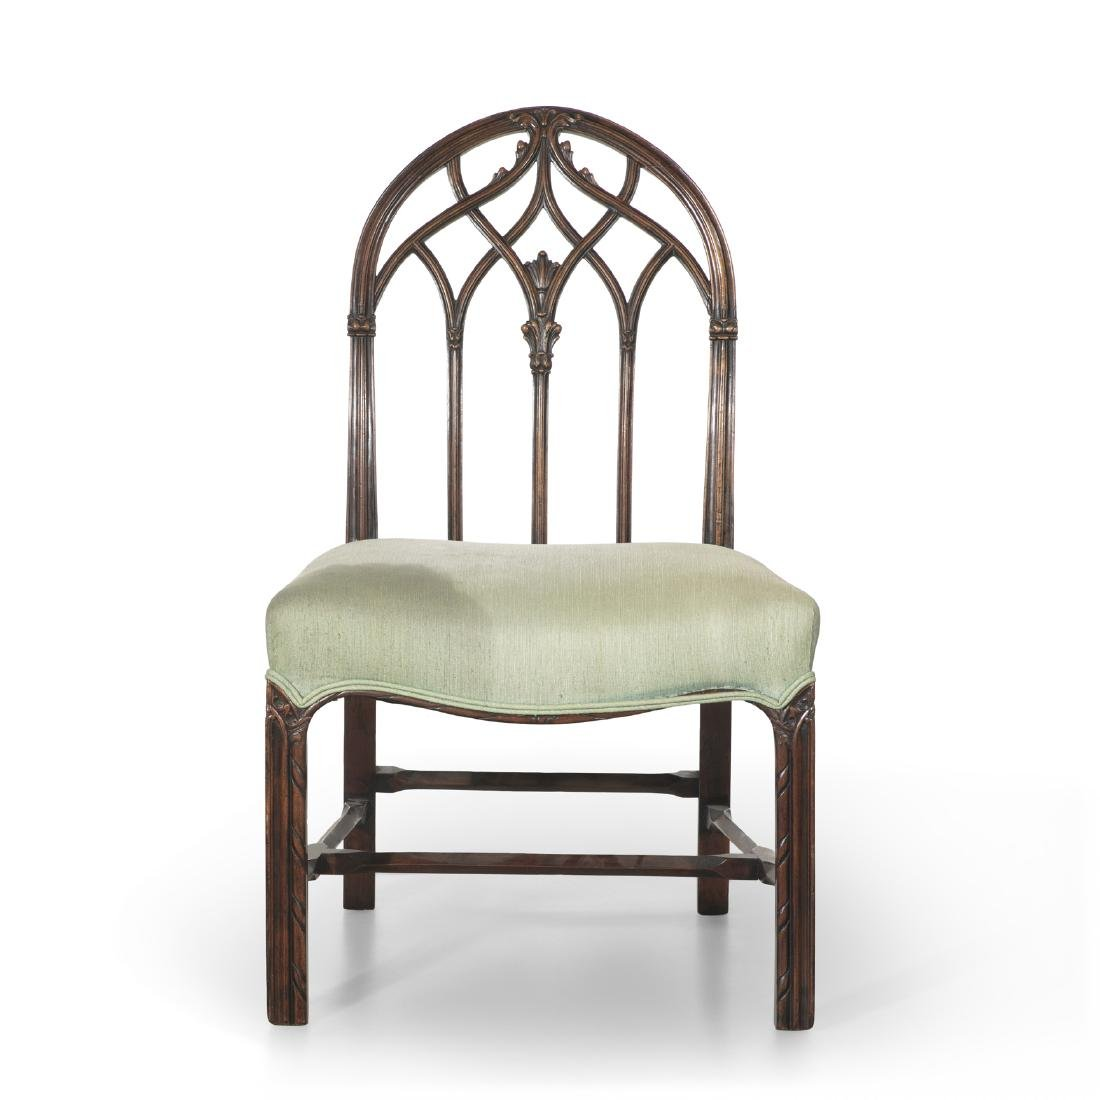 A Gothic Revival carved mahogany side chair